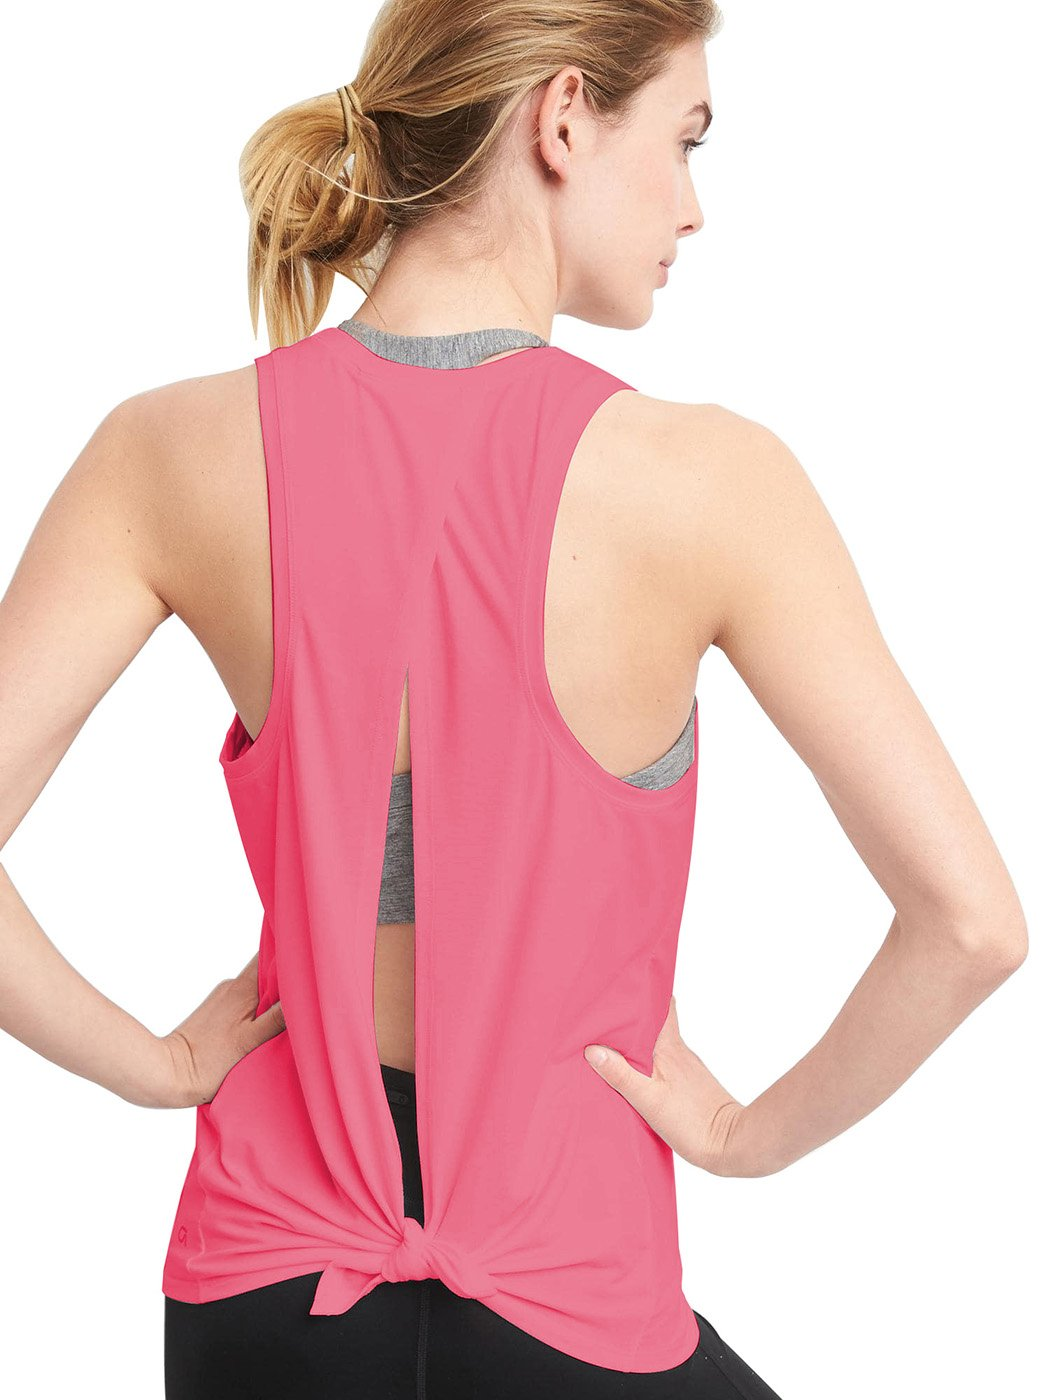 Bestisun Women's Loose Fit Backless Open Back Sexy Short Yoga Workout Tshirts Beach Casual Tank Top Large Pink